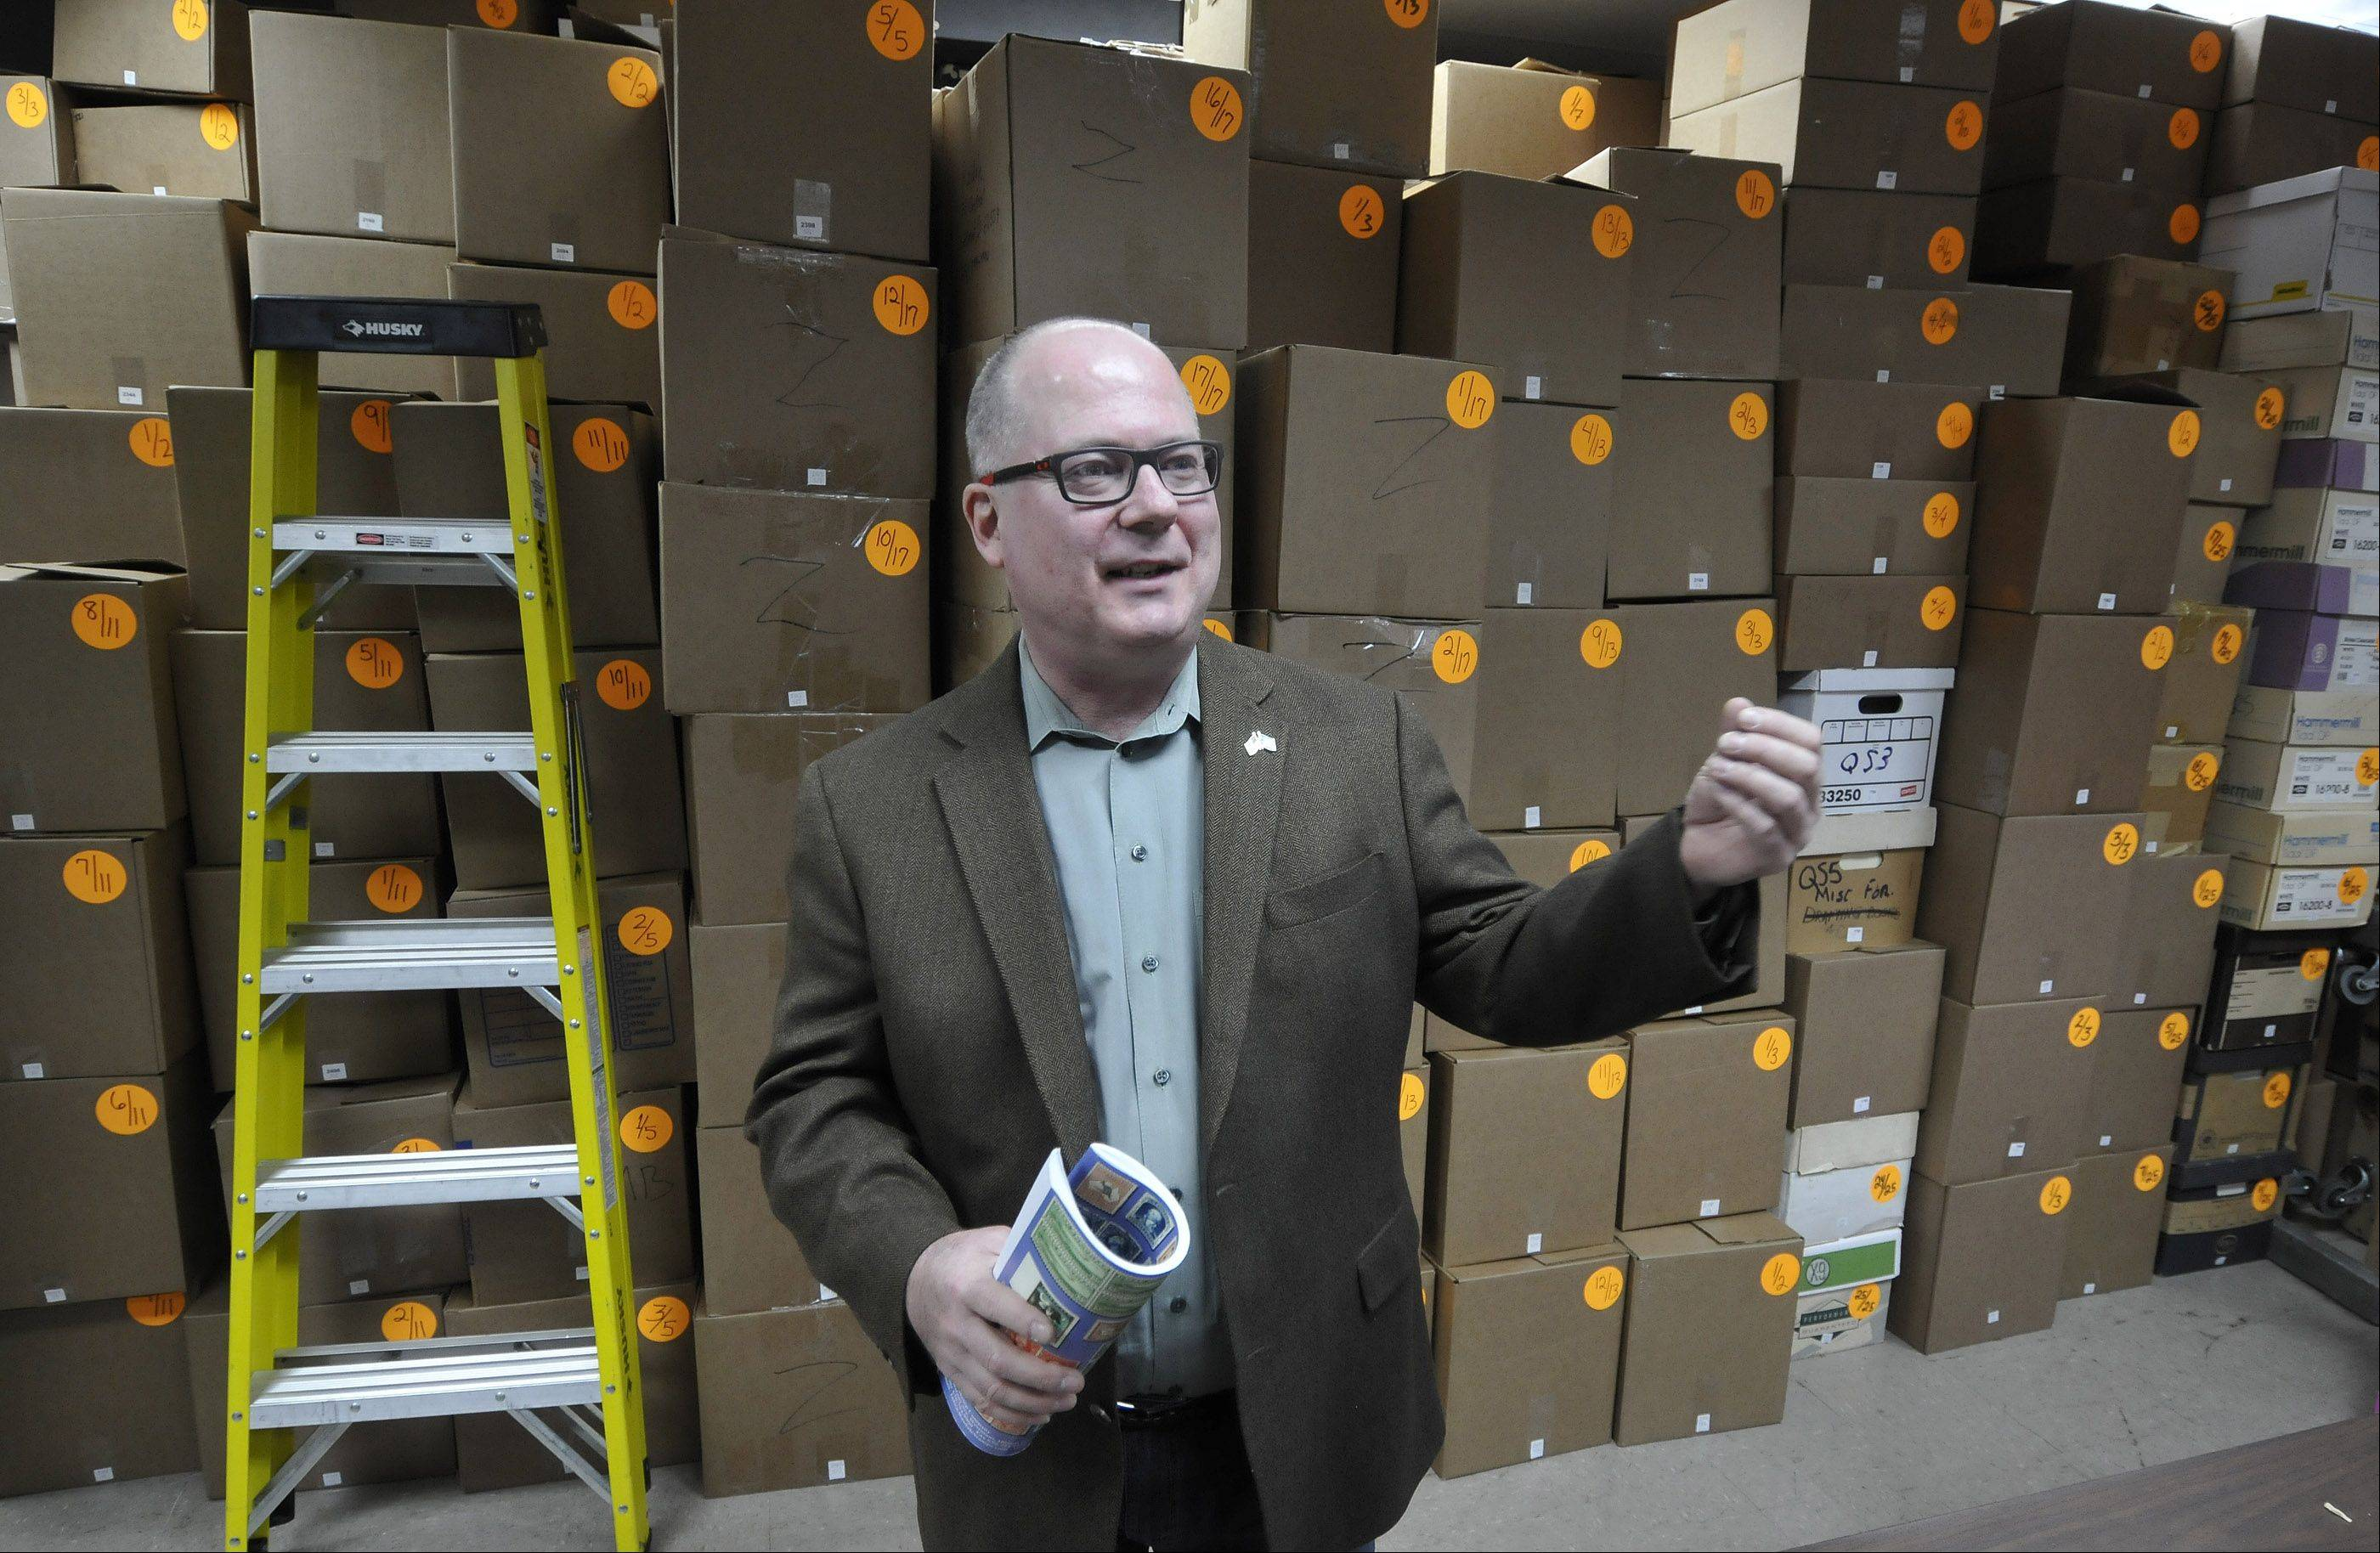 A rare stamp might be worth thousands of dollars, but most old stamps sell by the pound in these cartons at Rasdale Stamps in Westmont. Kim Kellermann, grandson of the founder, says Rasdale typically moves between 8 tons and 10 tons of stamps a year at each of their four auctions.